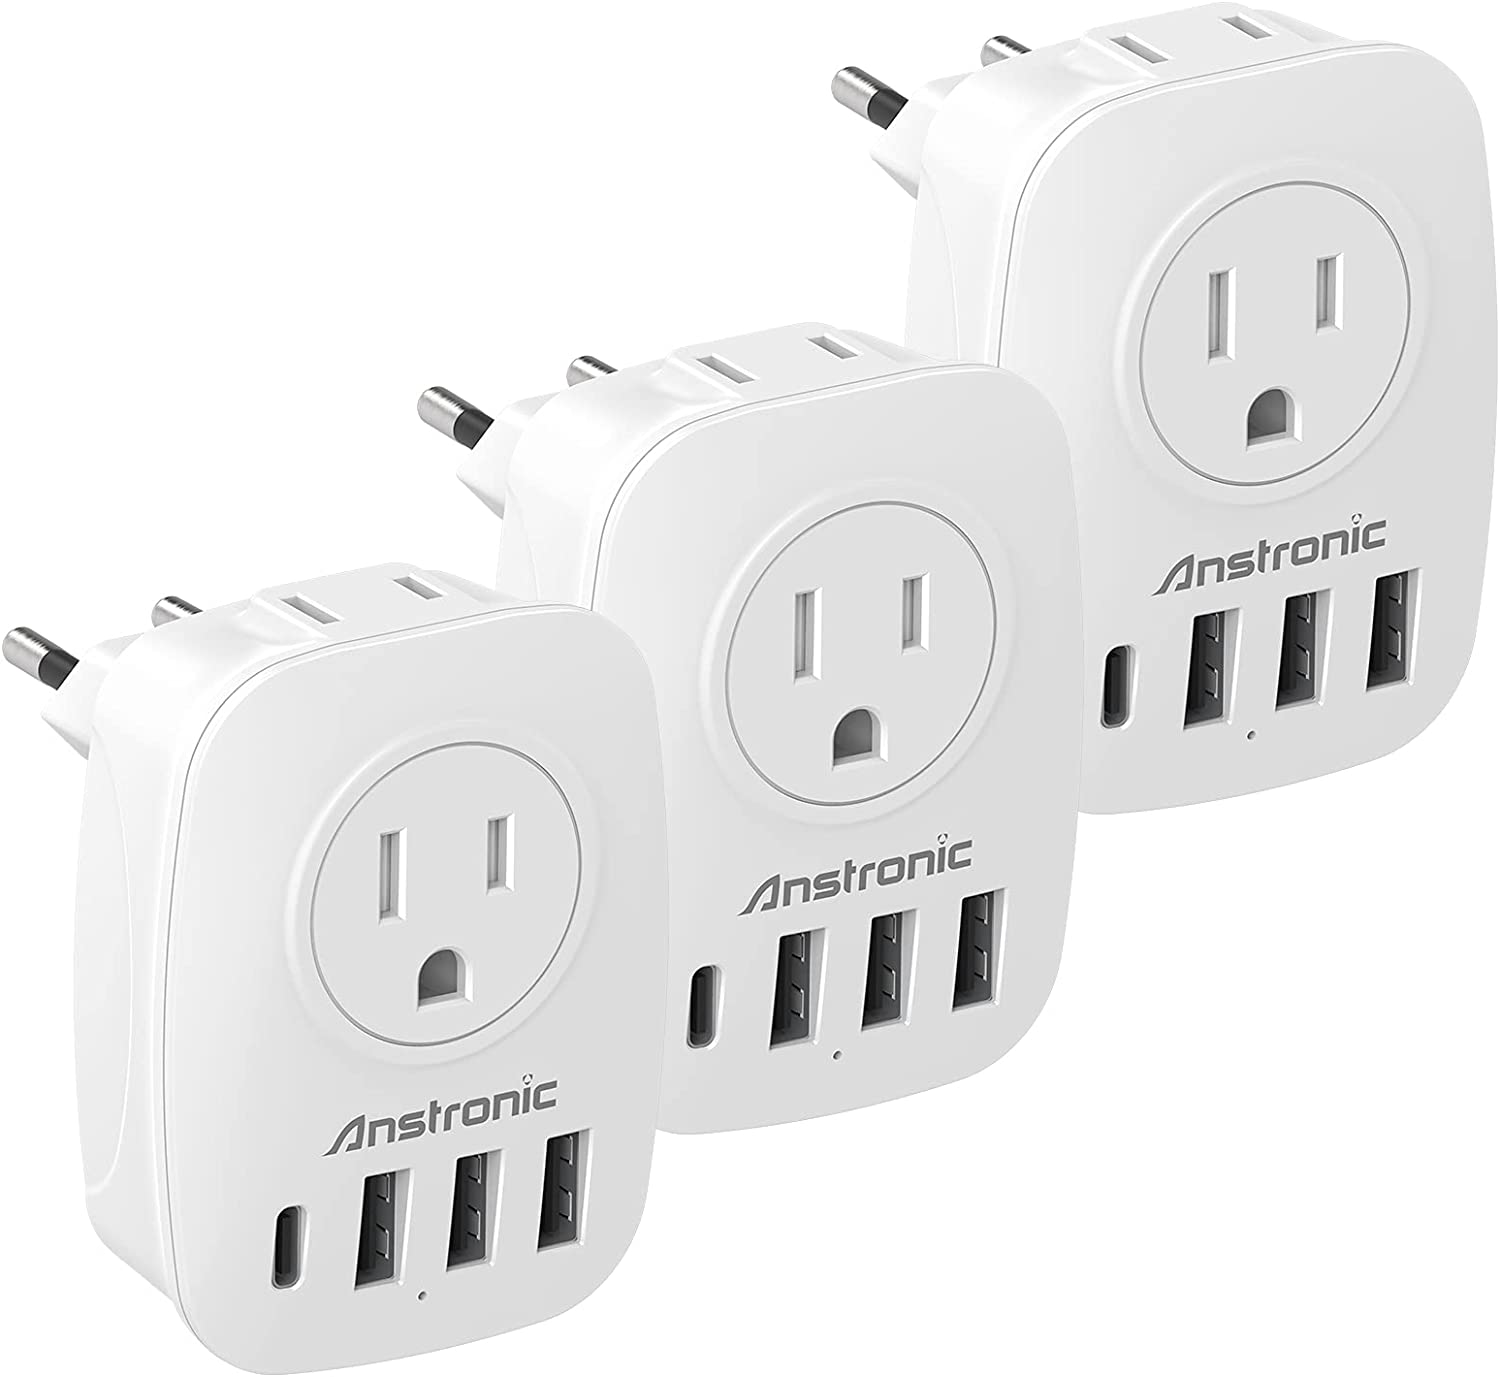 [3-Pack] European Plug Adapter, Anstronic International Travel Power Adapter with 2AC Outlets & 3USB Ports & 1Type C Charger from USA to Most of Europe EU Spain Germany France Italy Israel